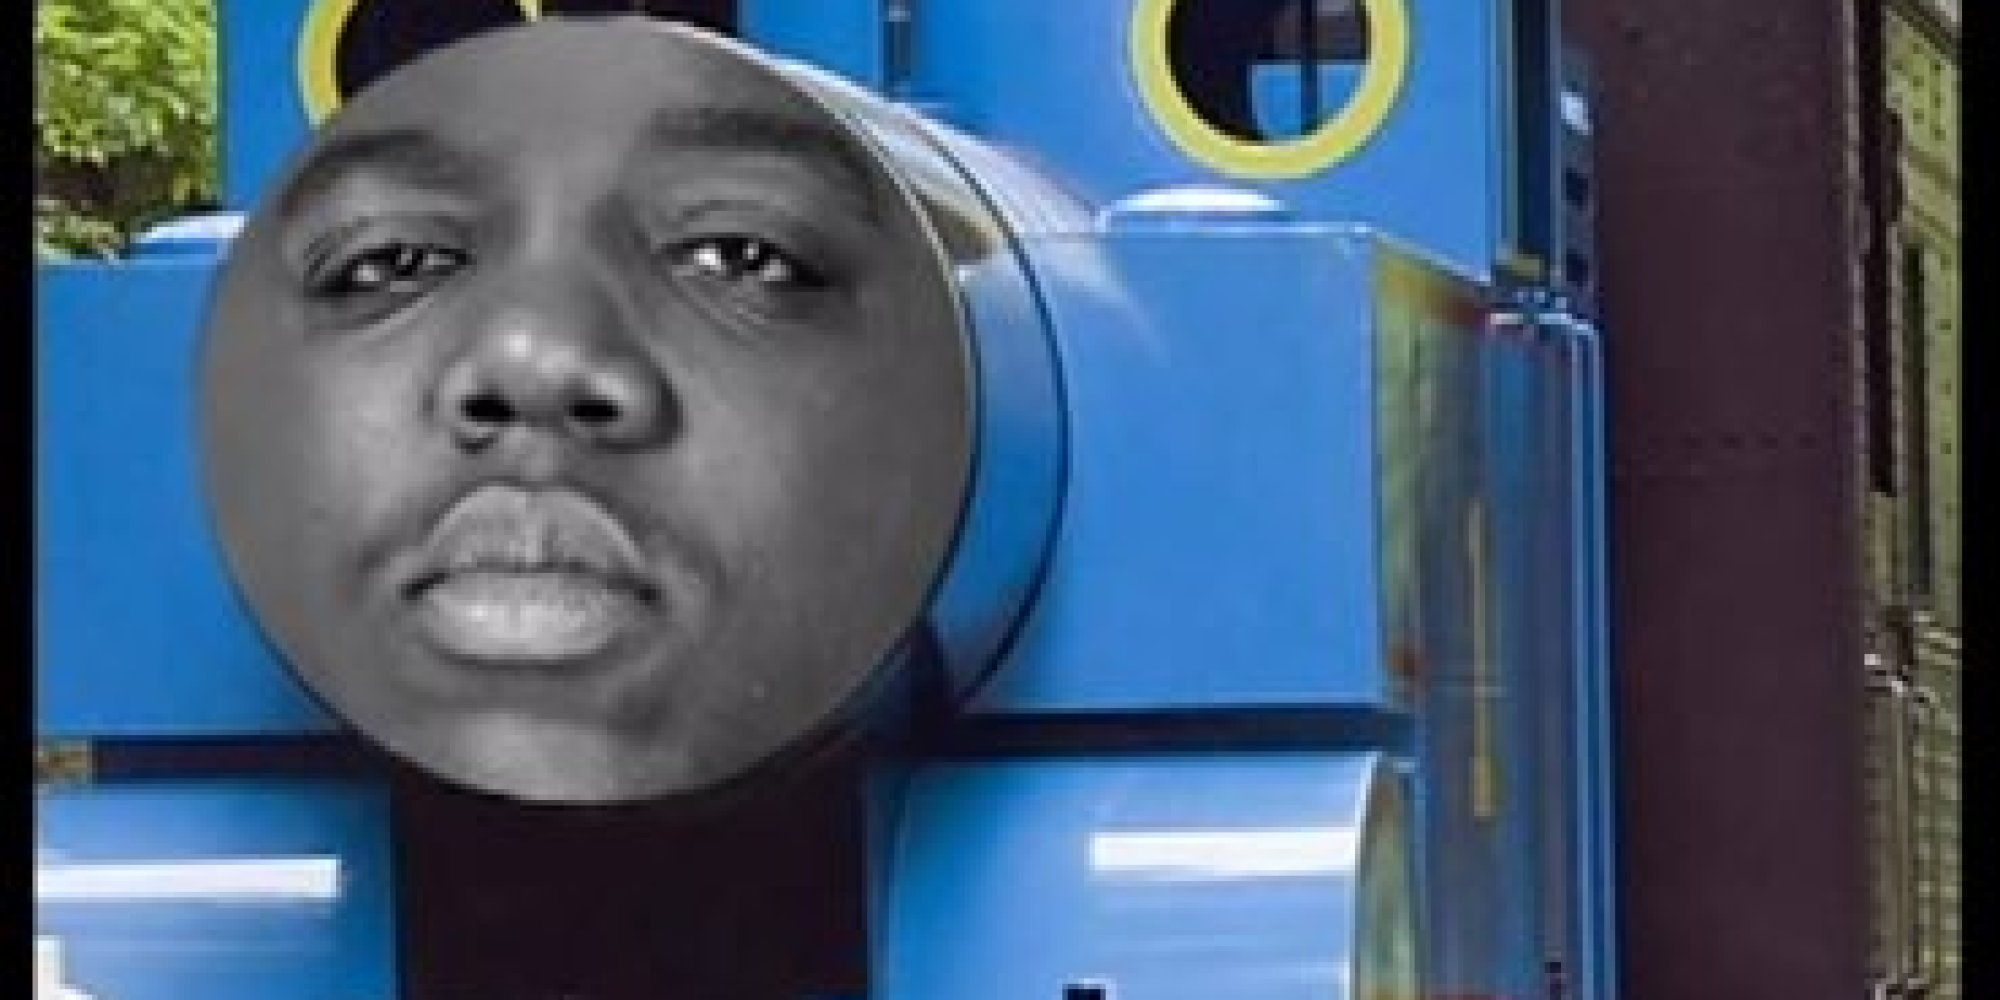 Thomas the tank engine black characters